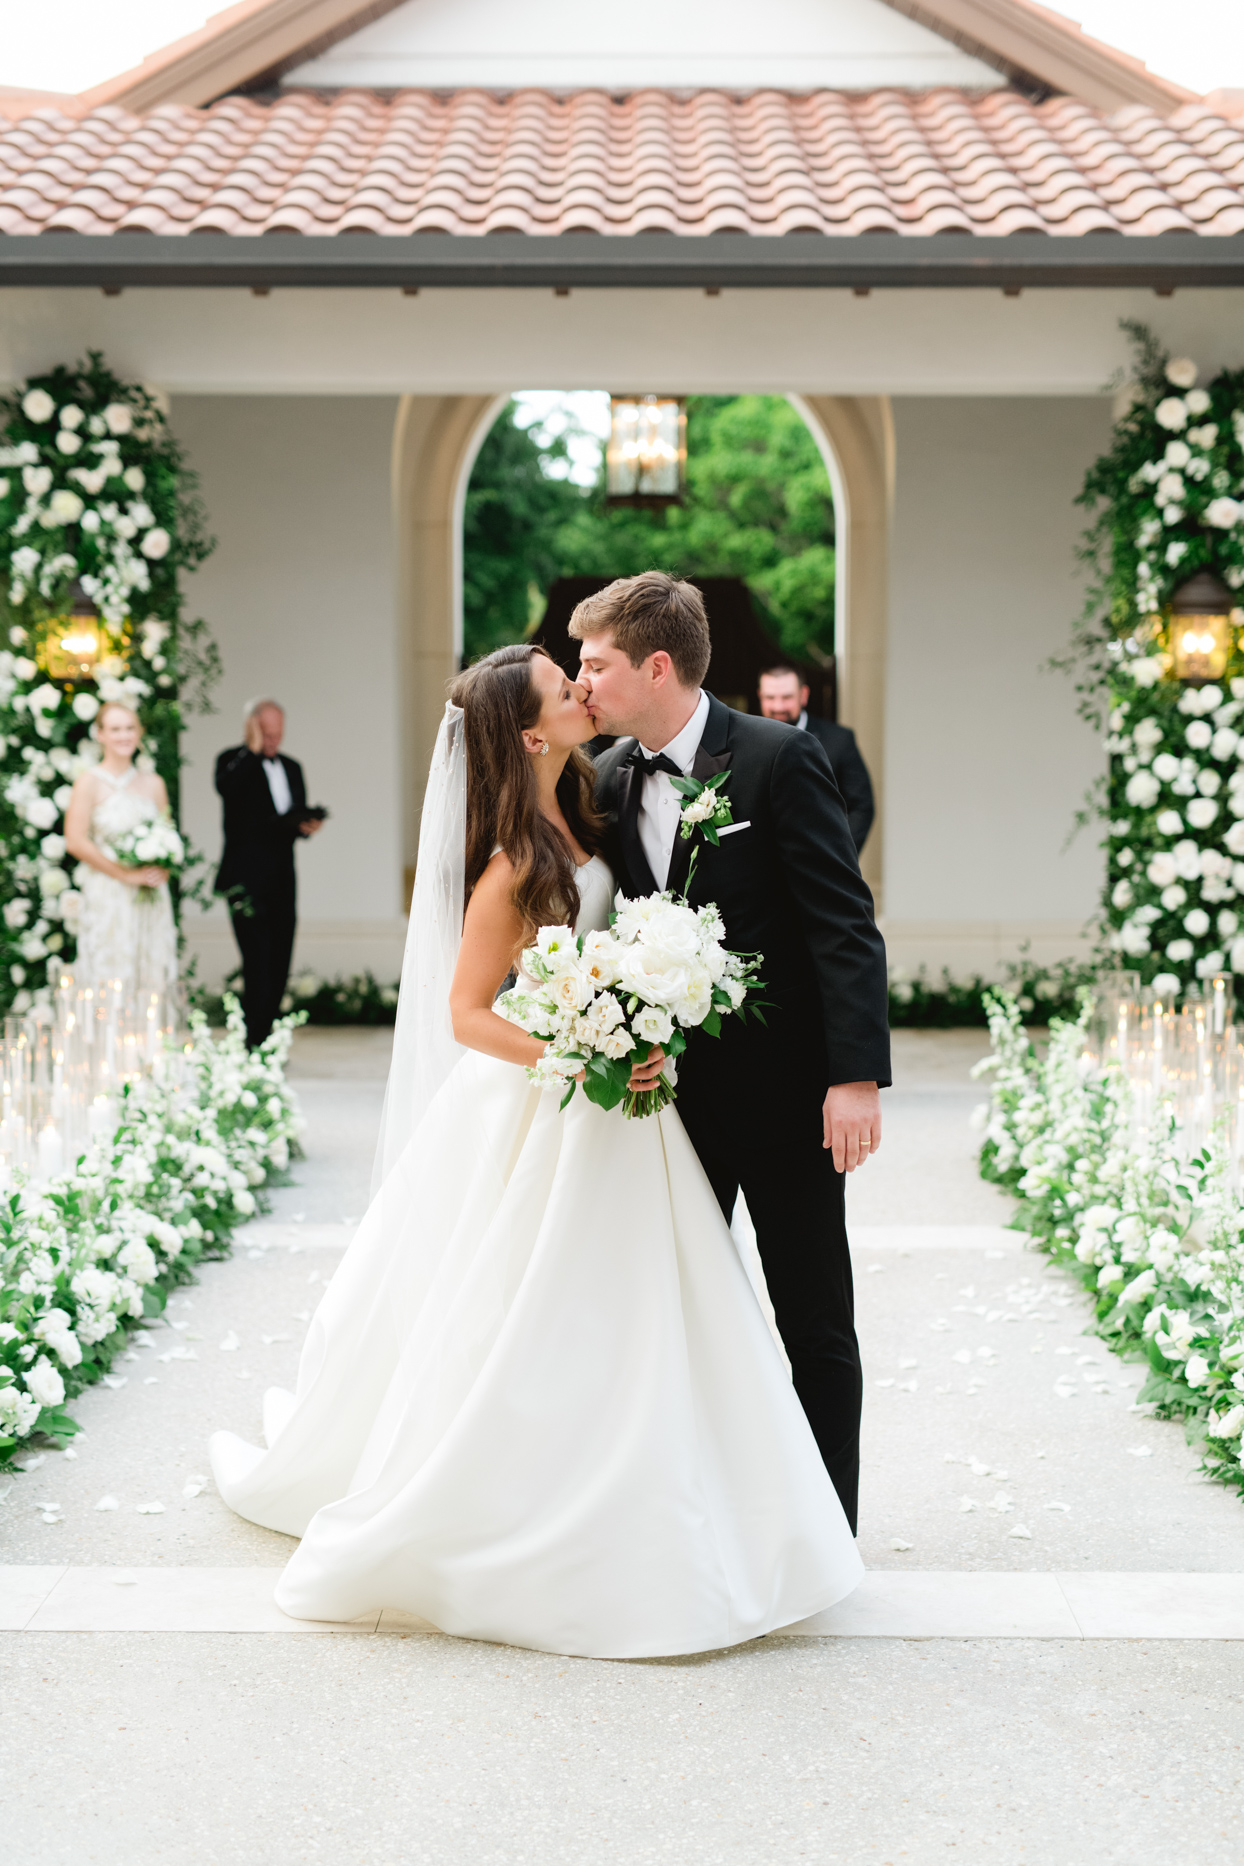 wedding couple kissing on aisle with florals and candles